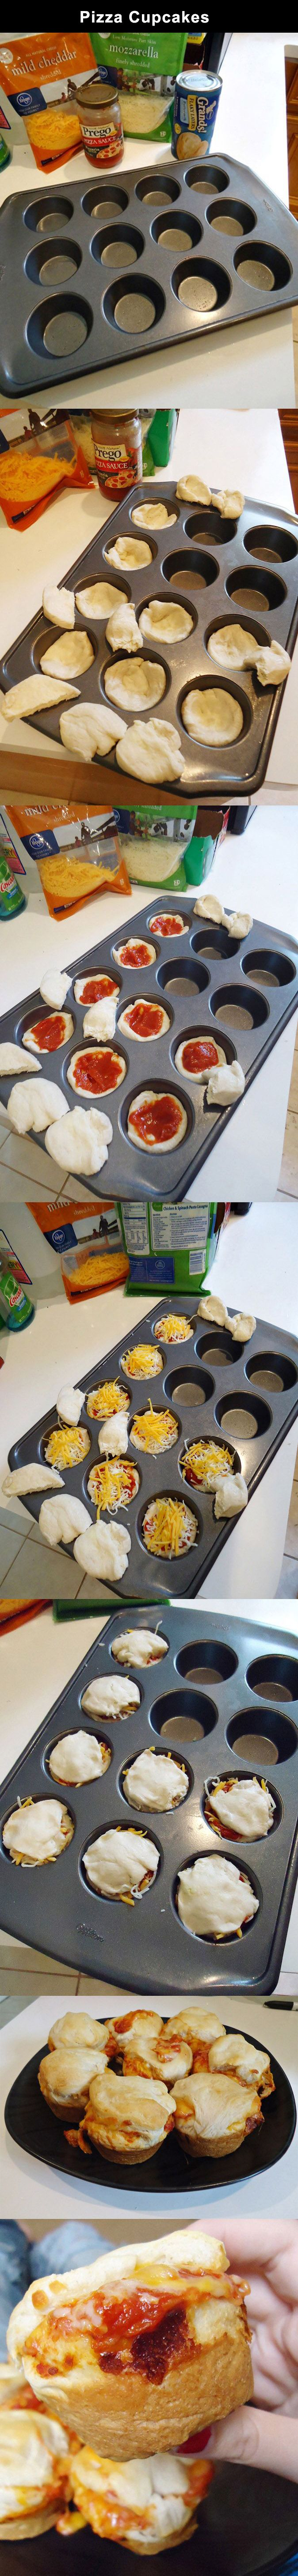 Pizza Cupcakes - #Cooking, #Pizza